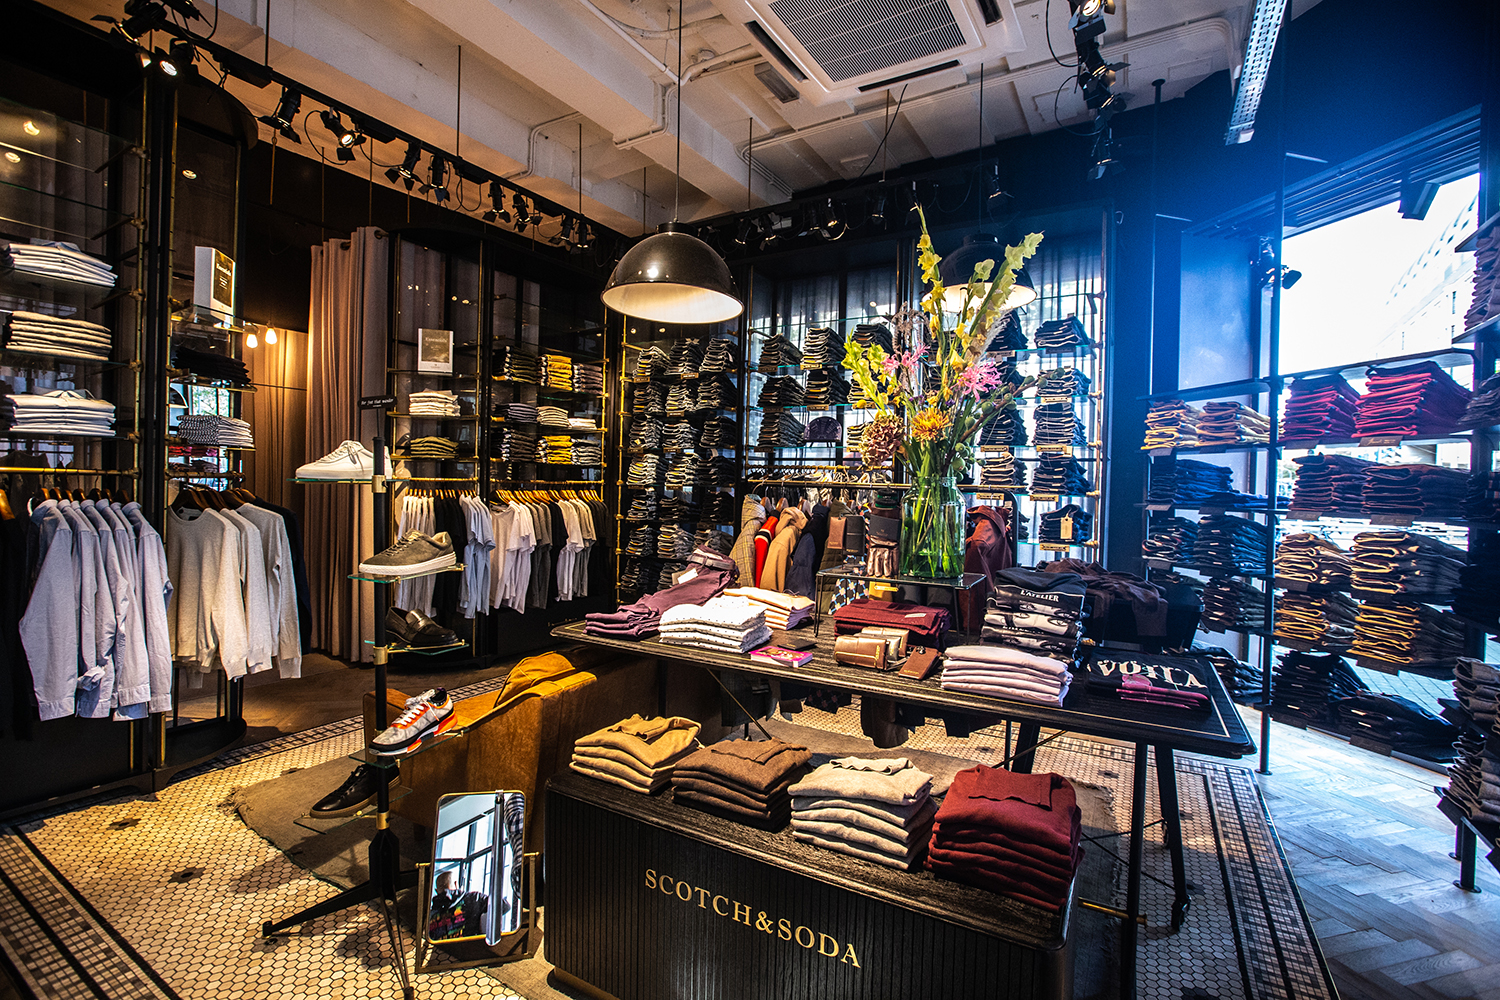 Scotch & Soda uses tamigo in their international retail chain to optimise rota planning, absence management, employee communication and HR Master data